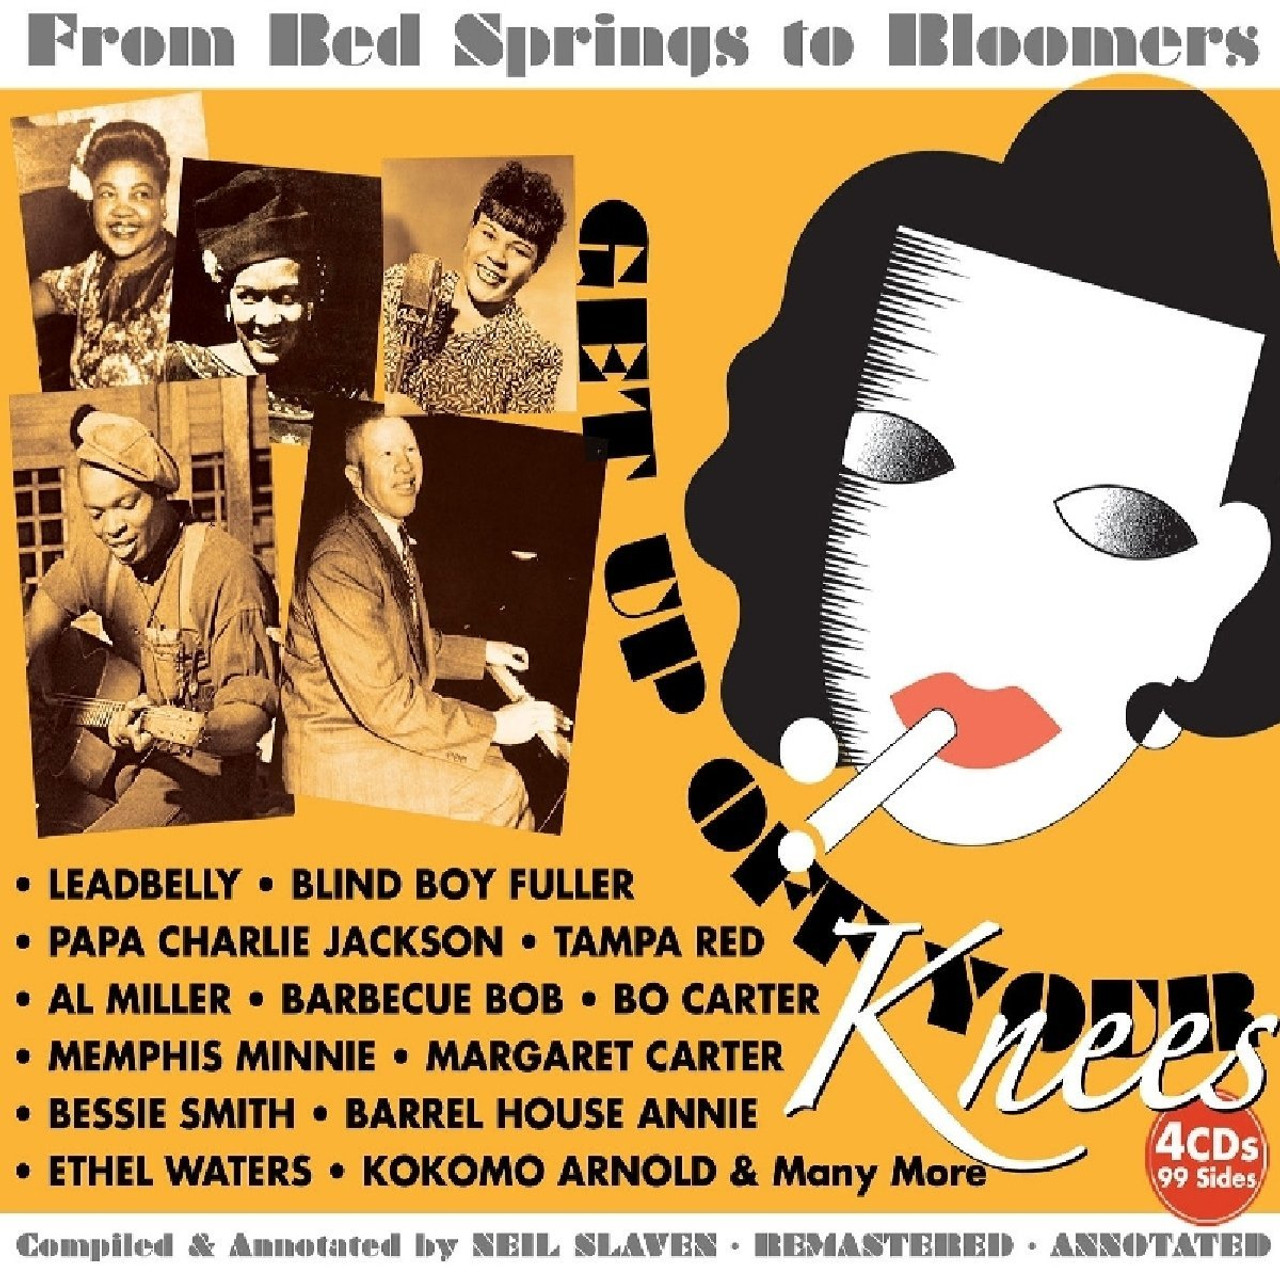 USA ONLY: Get Up Off Your Knees: From Bed Springs To Bloomers - 4 CD SET PLUS 8 ISSUES & FREE SHIPPING